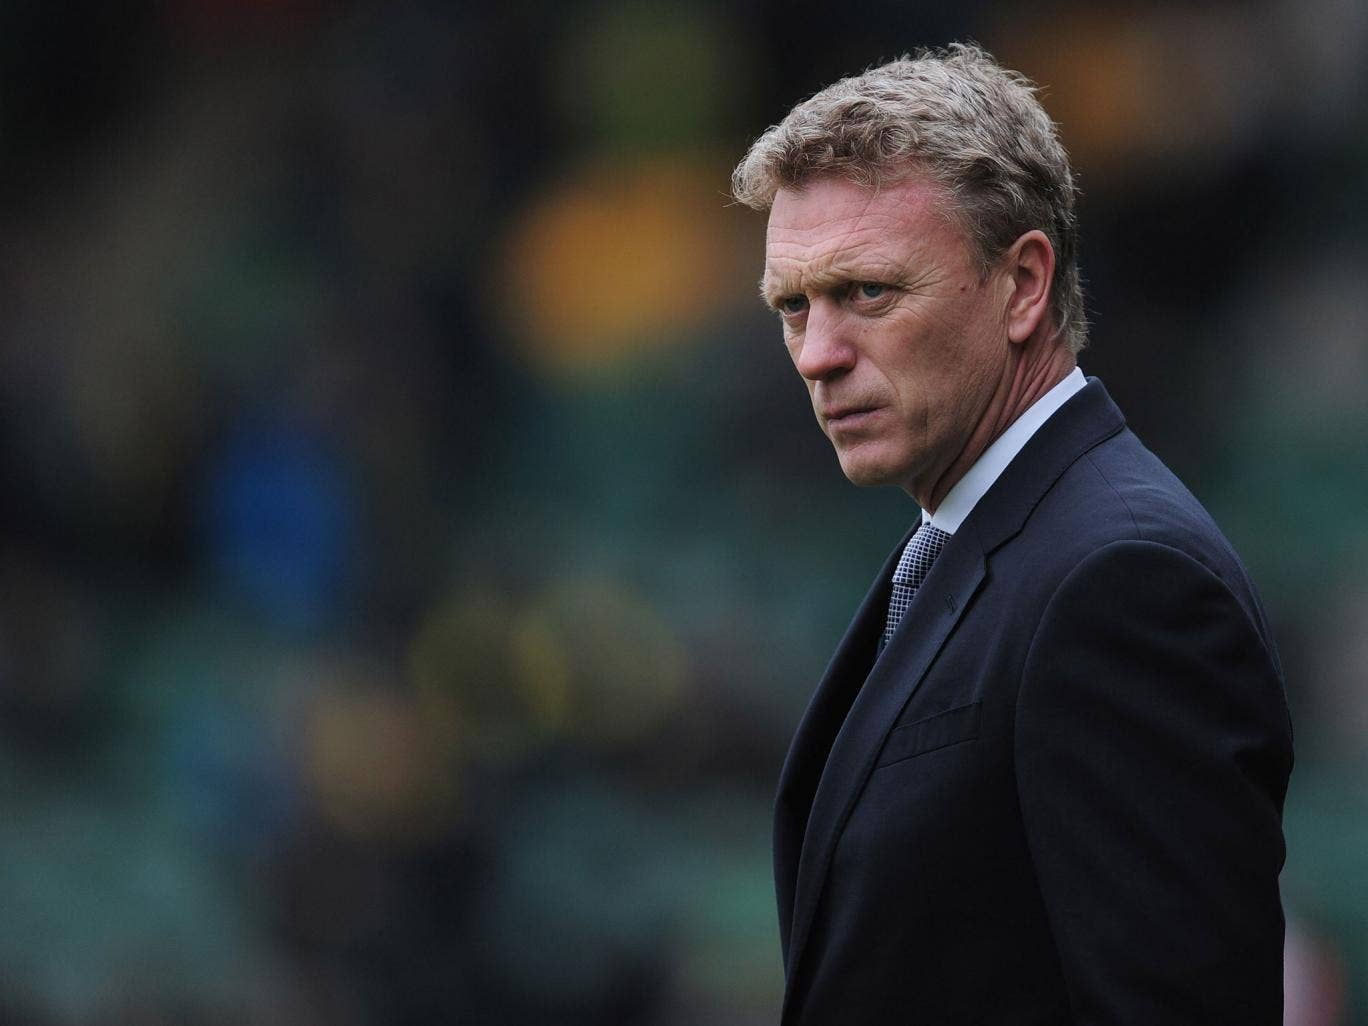 Everton boss David Moyes won't be pleased with just one point